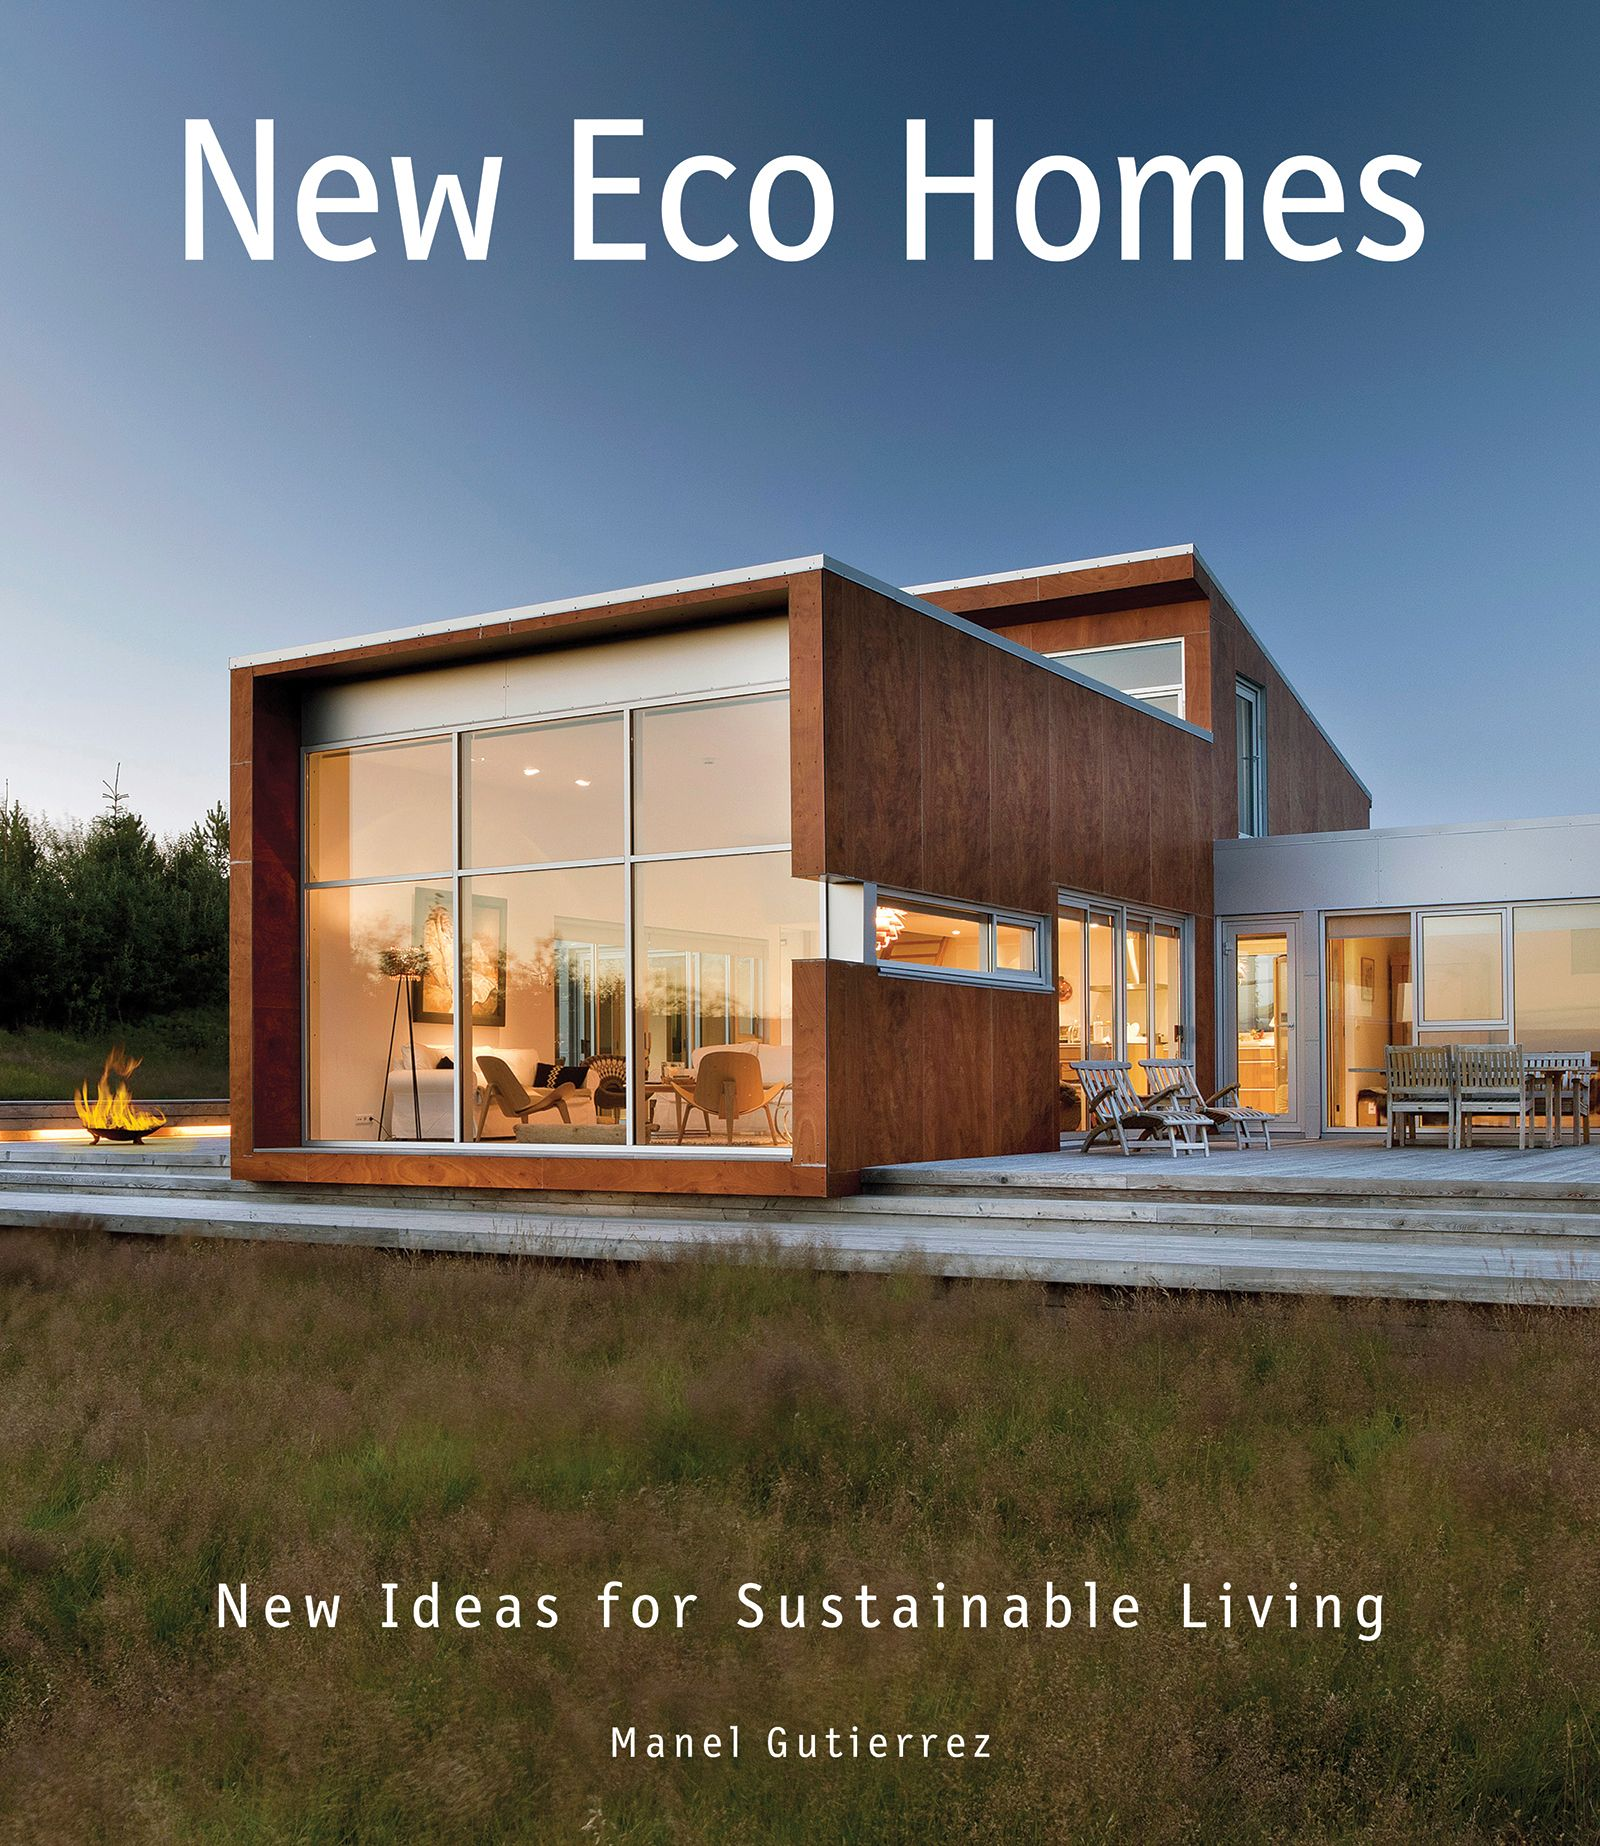 New Eco Homes Eco House Design Eco House Sustainable Architecture